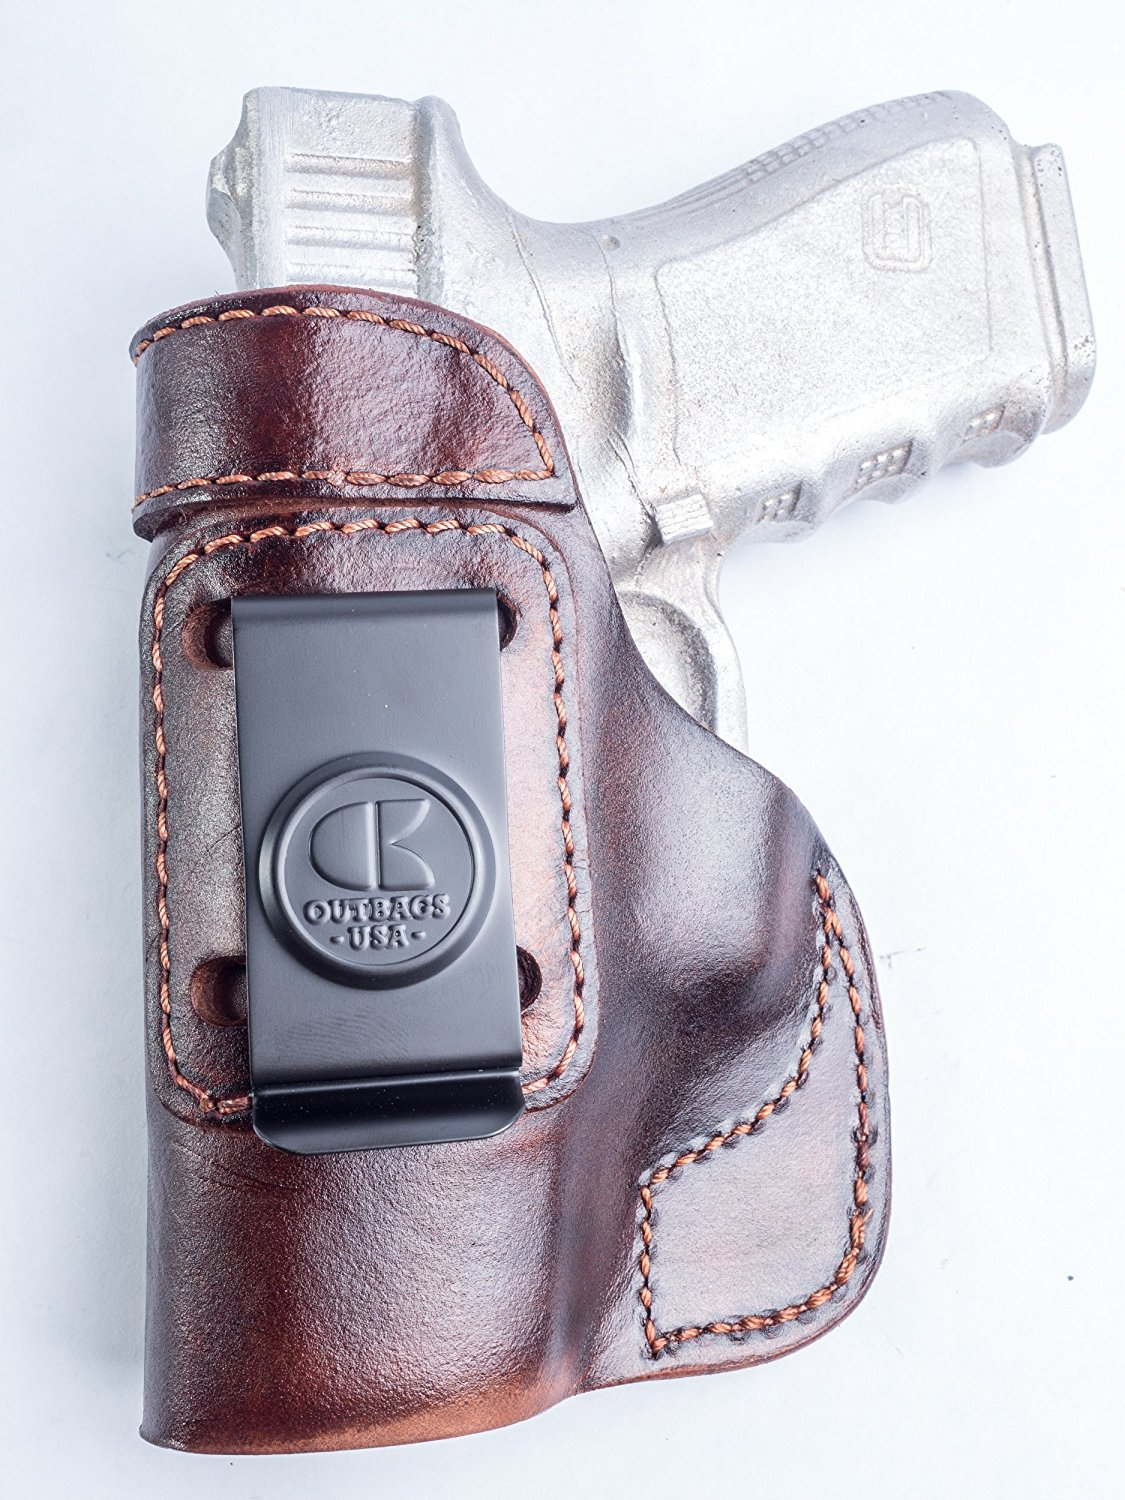 Cheap Glock 23 40, find Glock 23 40 deals on line at Alibaba com